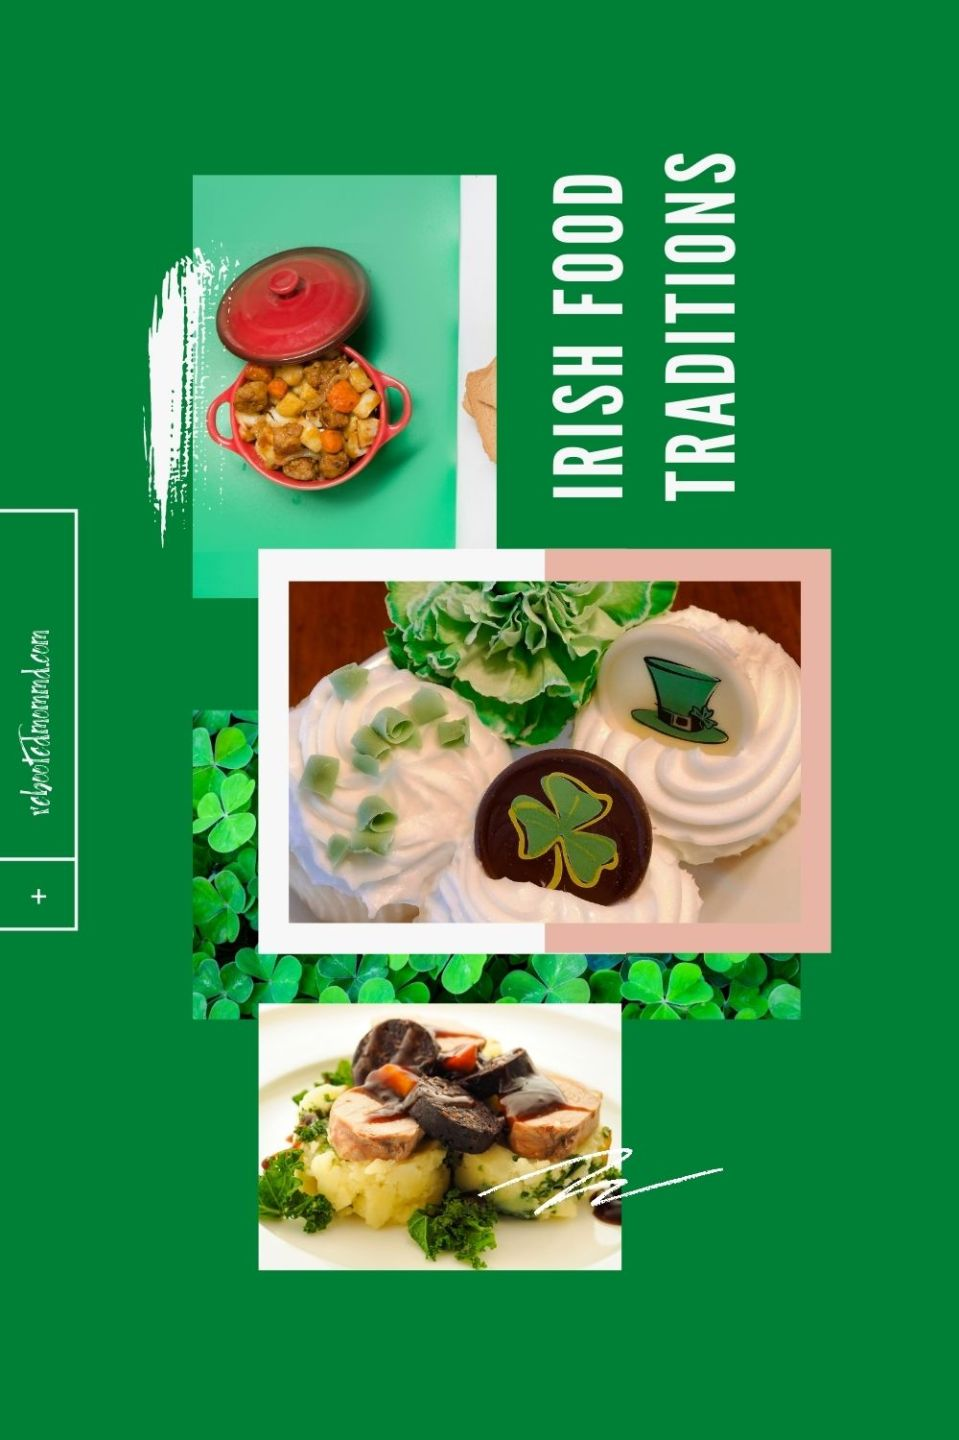 Irish Food Traditions and Where They Come From